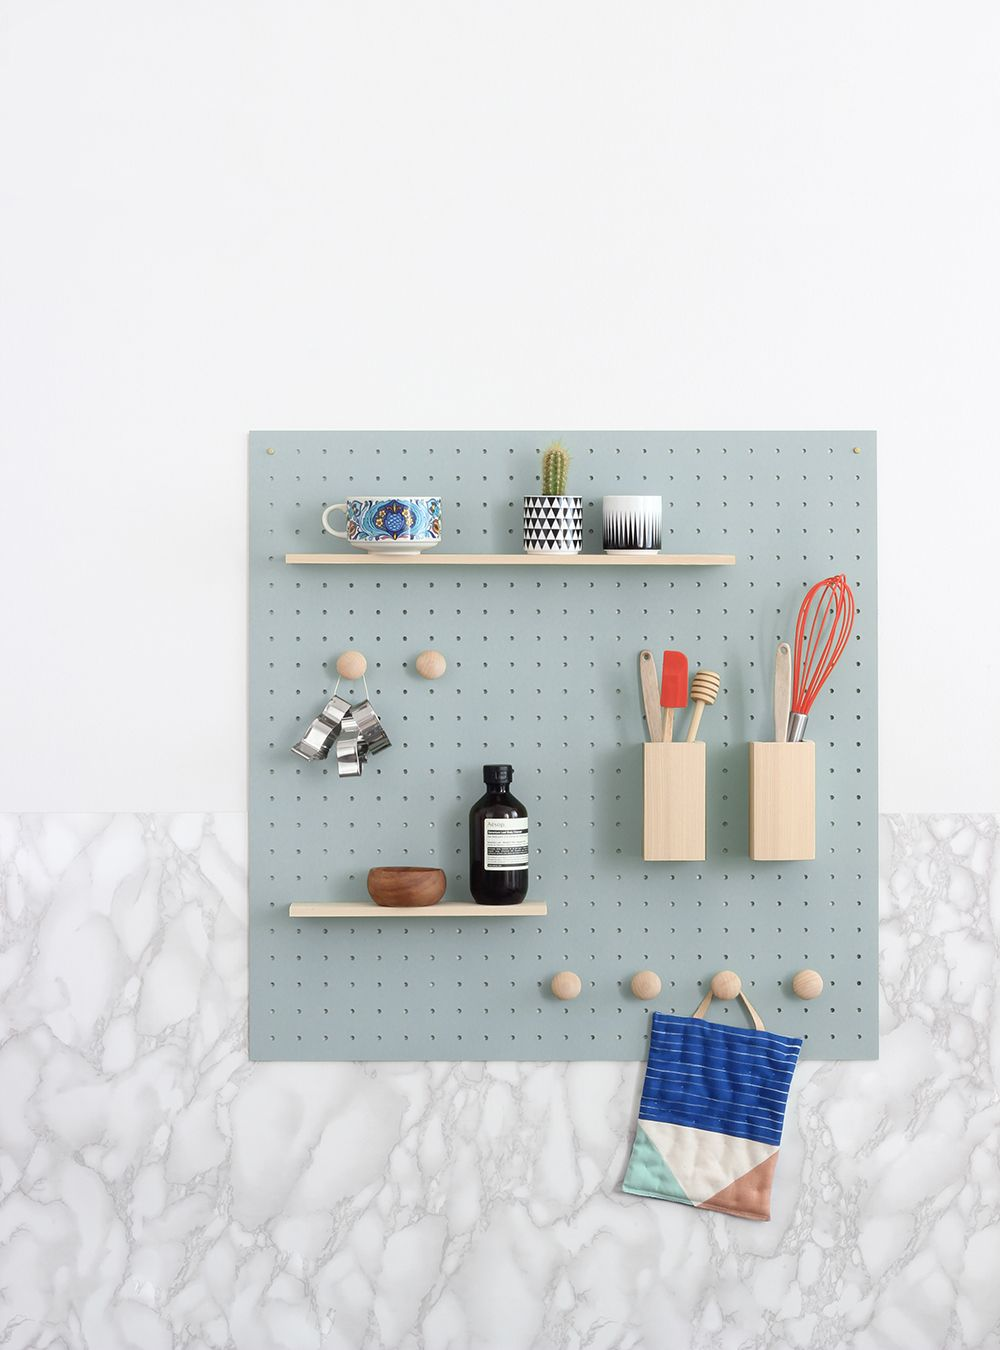 Diy Wall Organizer By Heju Diy Home Decor Kuche Mobel Diy Mobel